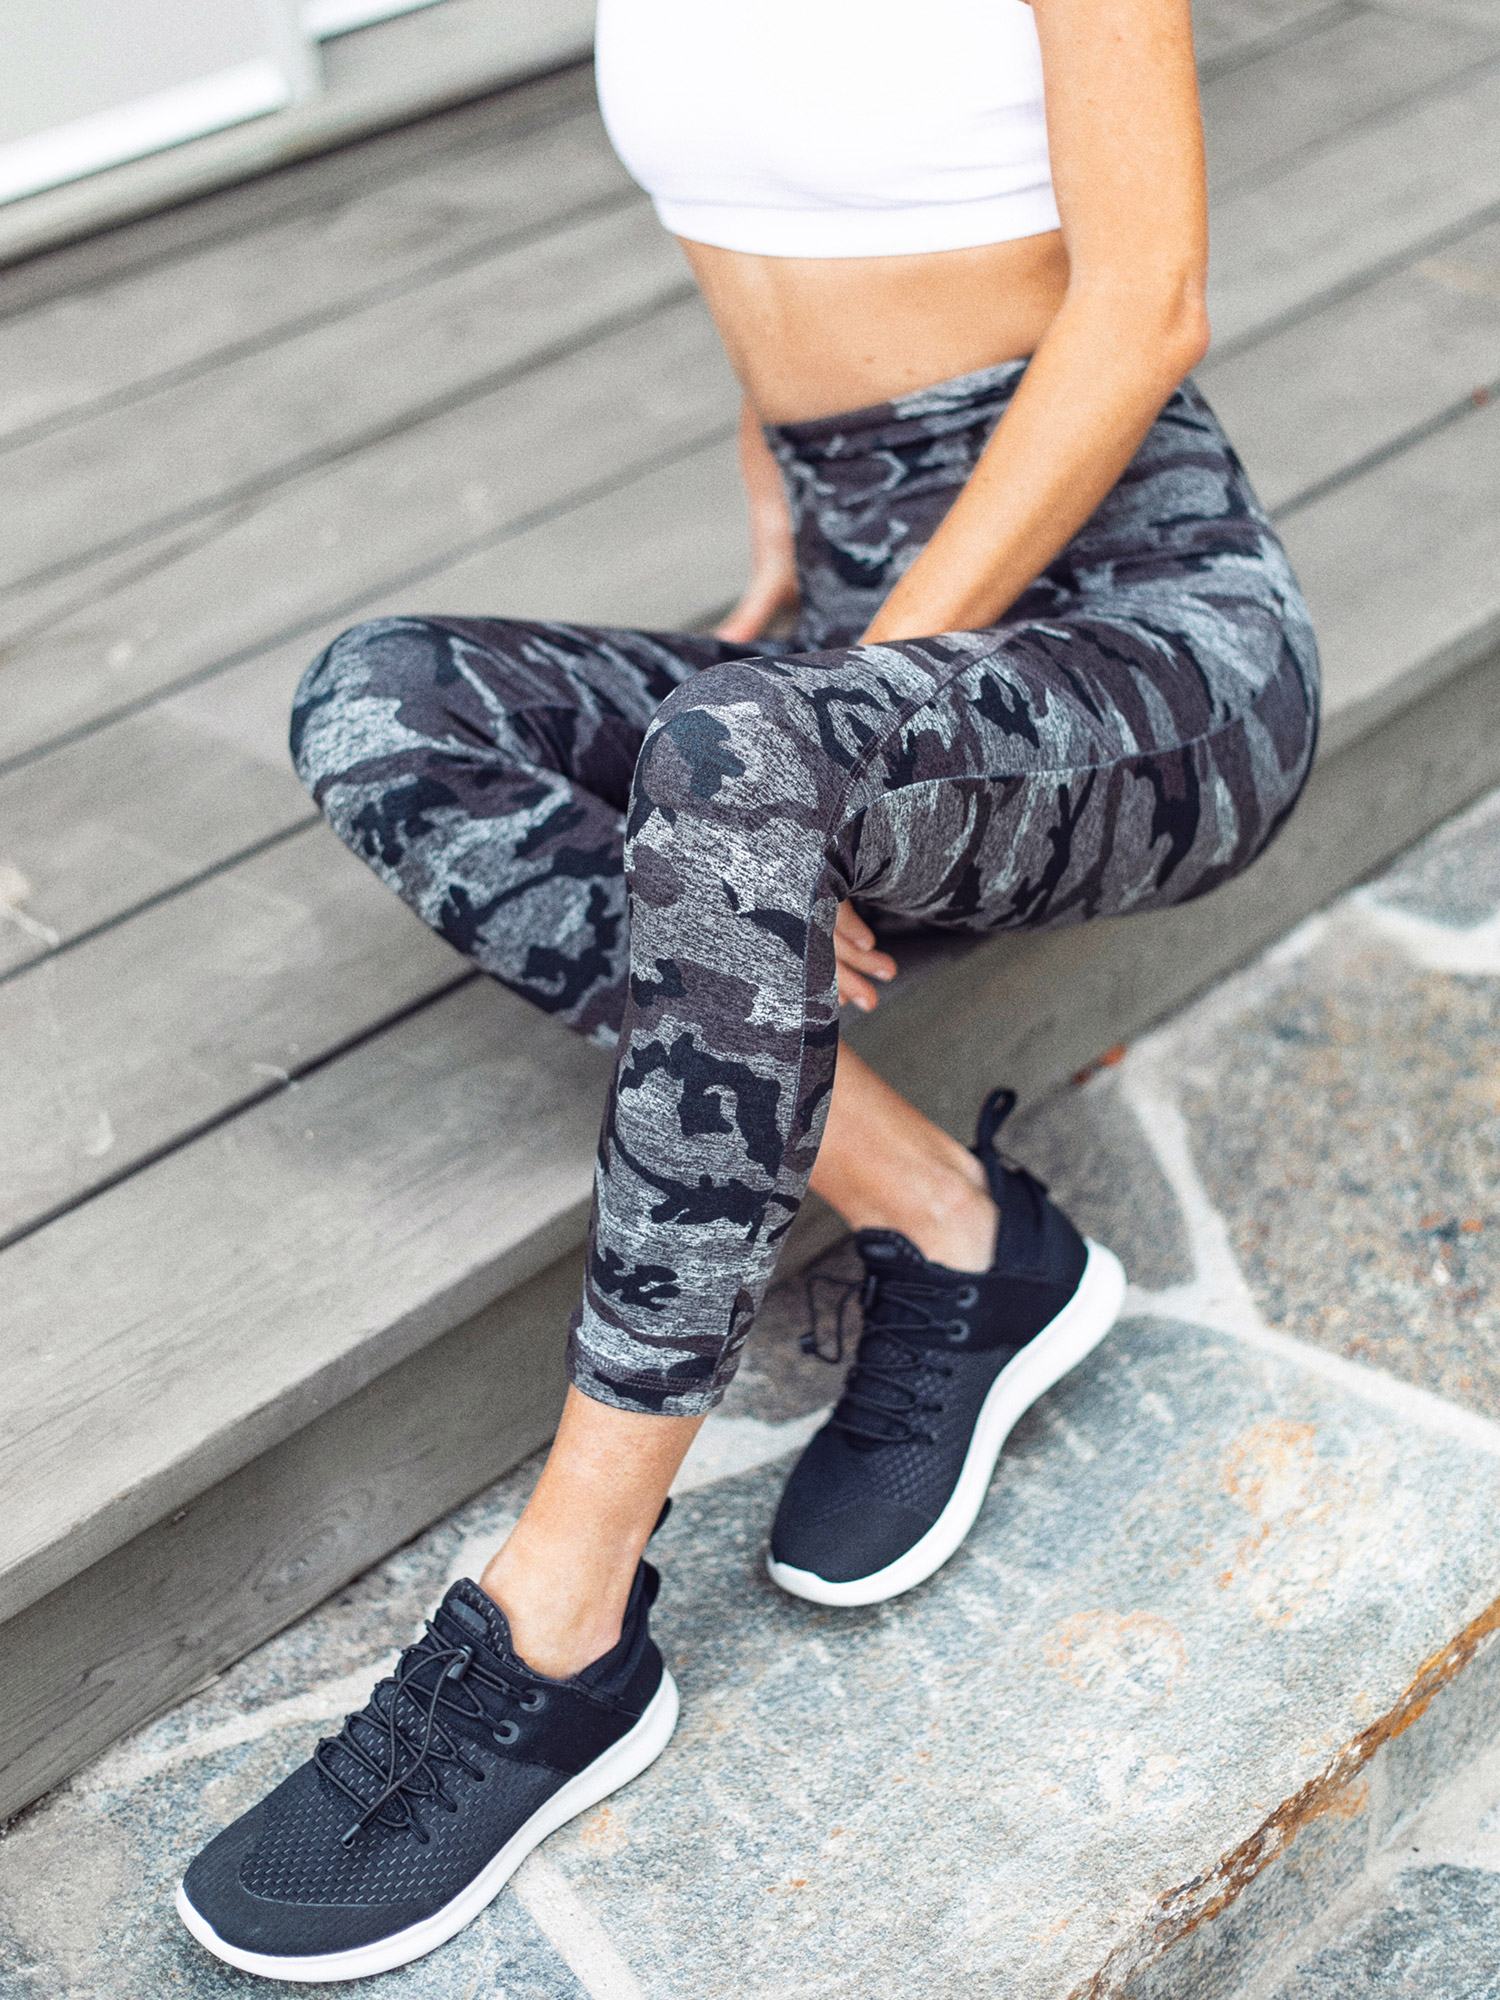 kelly-wirht-fiance-photography-cute-workout-clothes-strut-this-00029.jpg